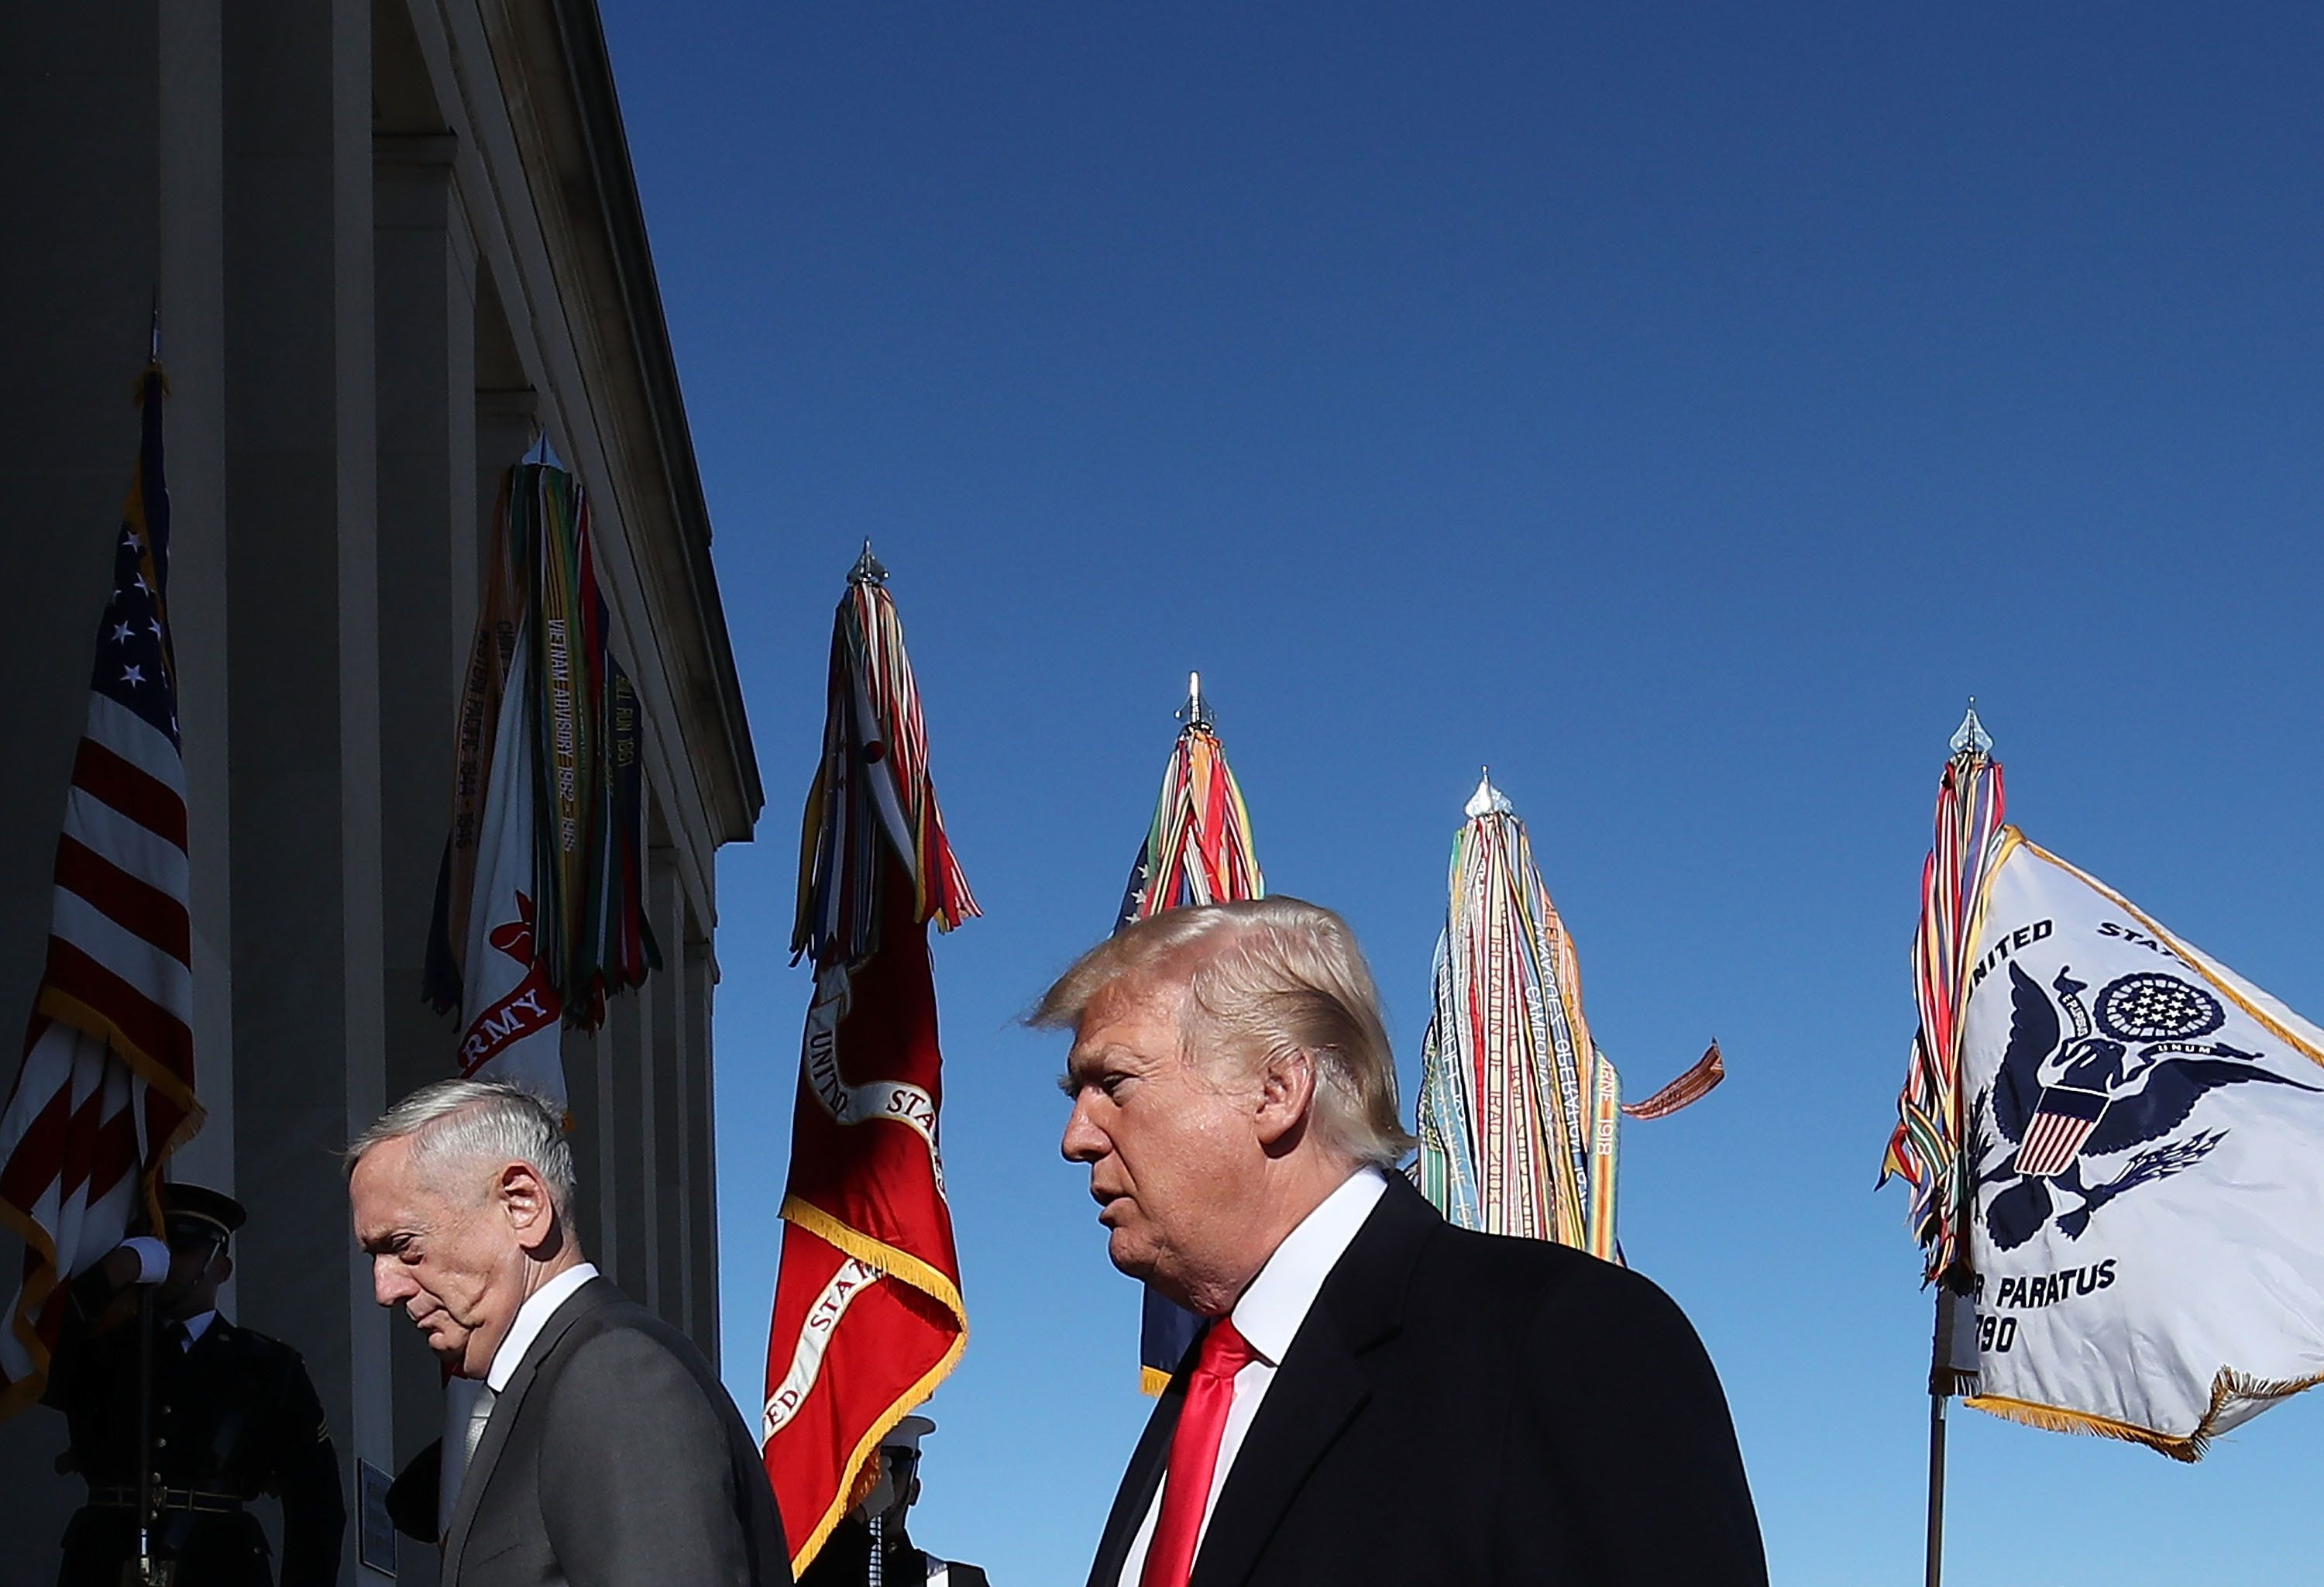 Mattis says Trump's parade request reflects 'affection' for troops